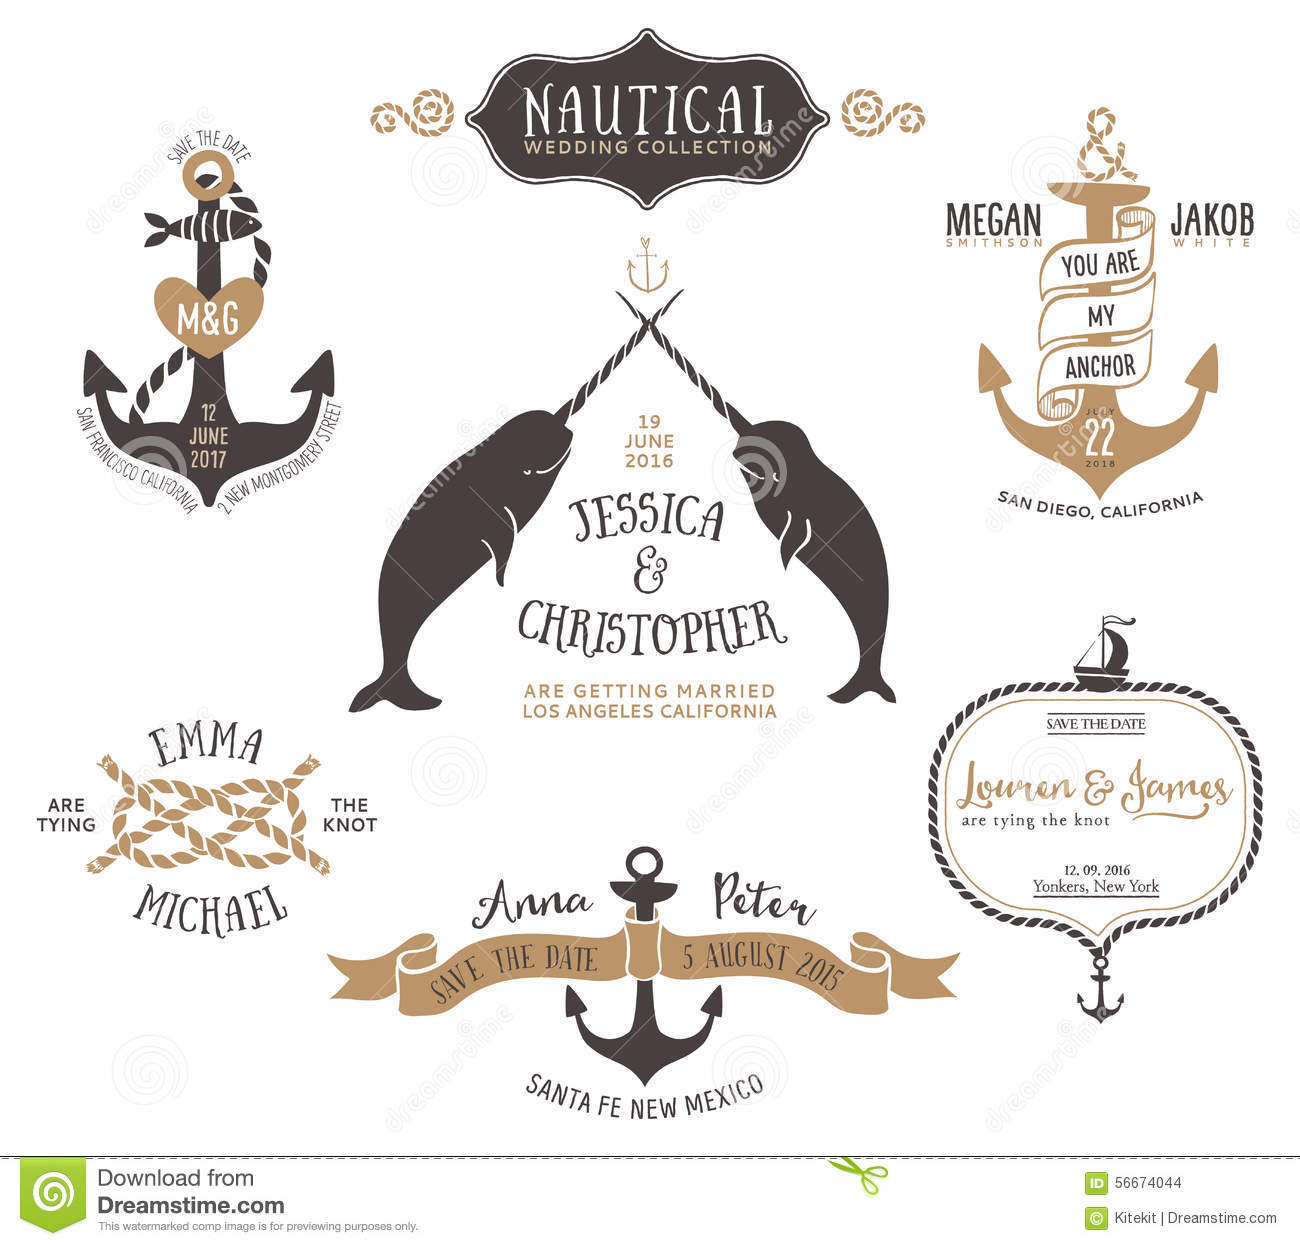 hand drawn wedding invitation logo templates in nautical style